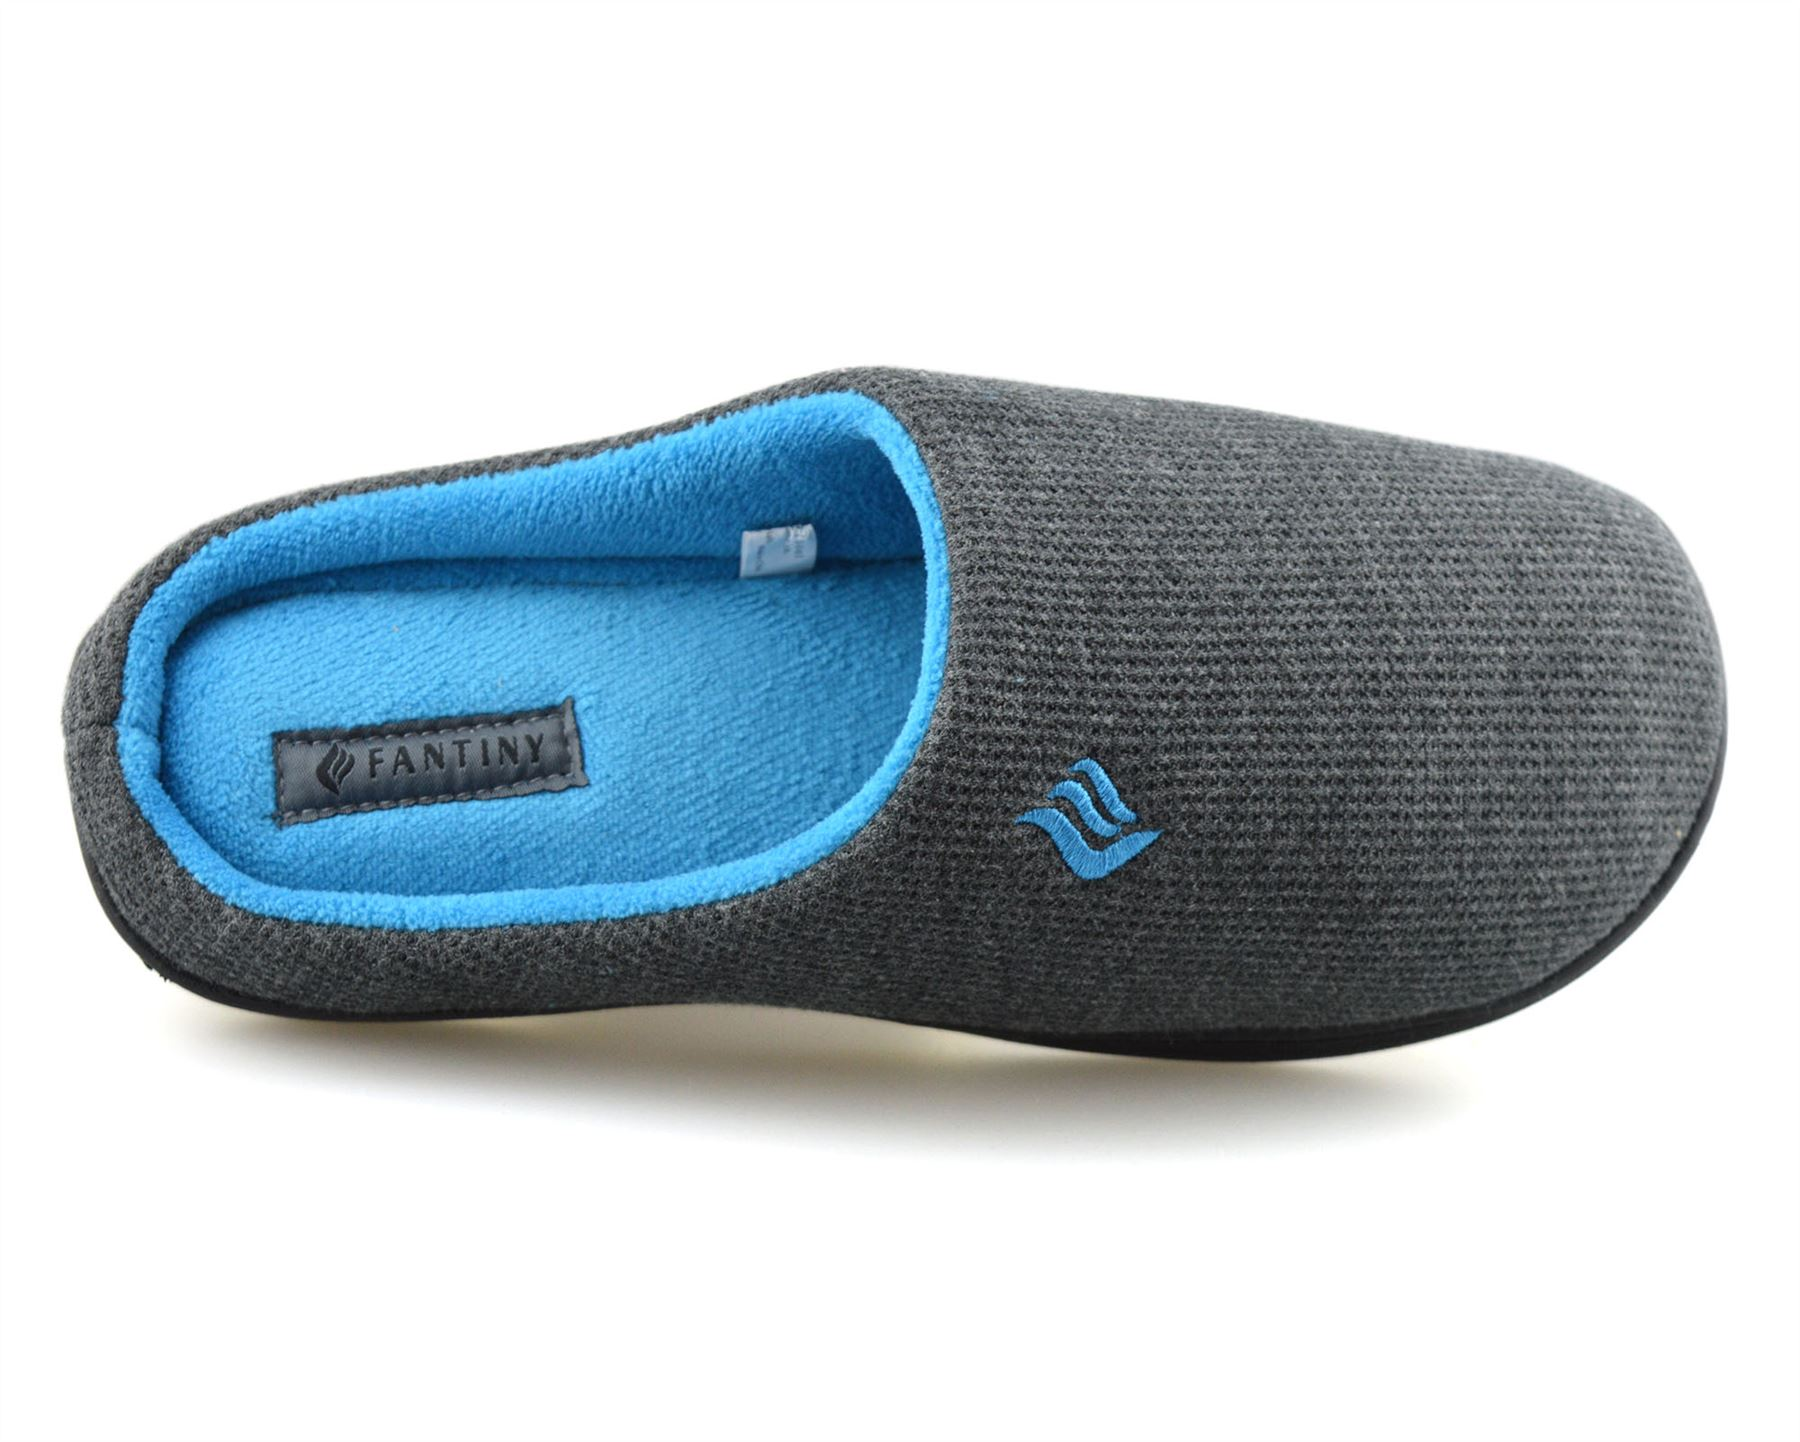 Mens-Memory-Foam-Warm-Fleece-Lined-Cotton-Slippers-Slip-On-Clog-Mules-Shoes-Size thumbnail 23